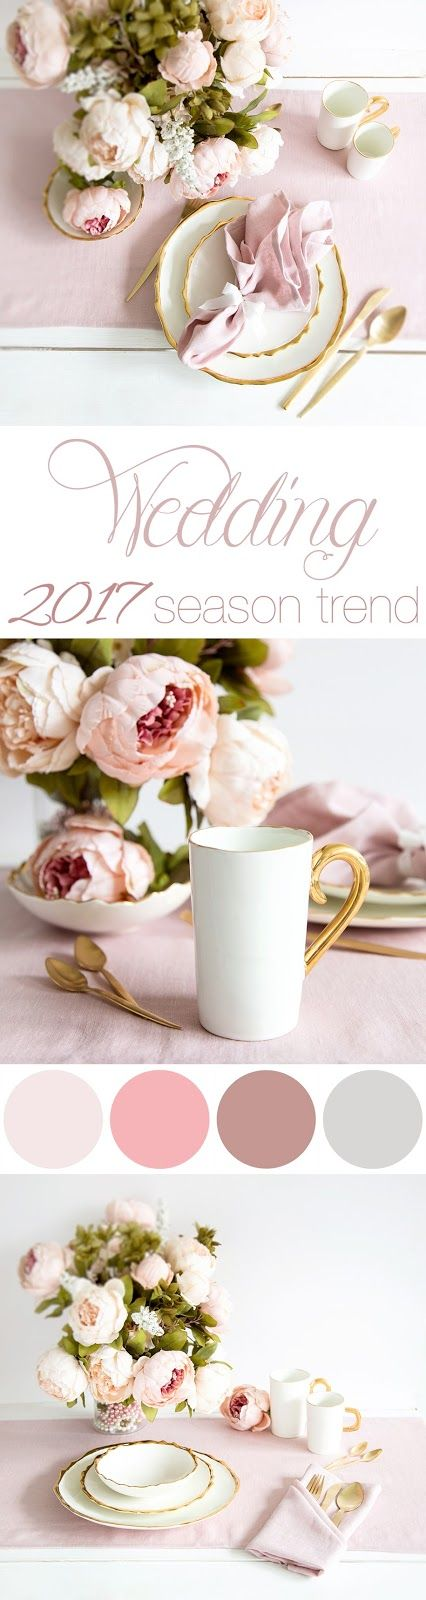 BLUSH PINK IS 2017 WEDDING COLOR TREND Read more...  #blush #napkins #table #decor #wedding #trends